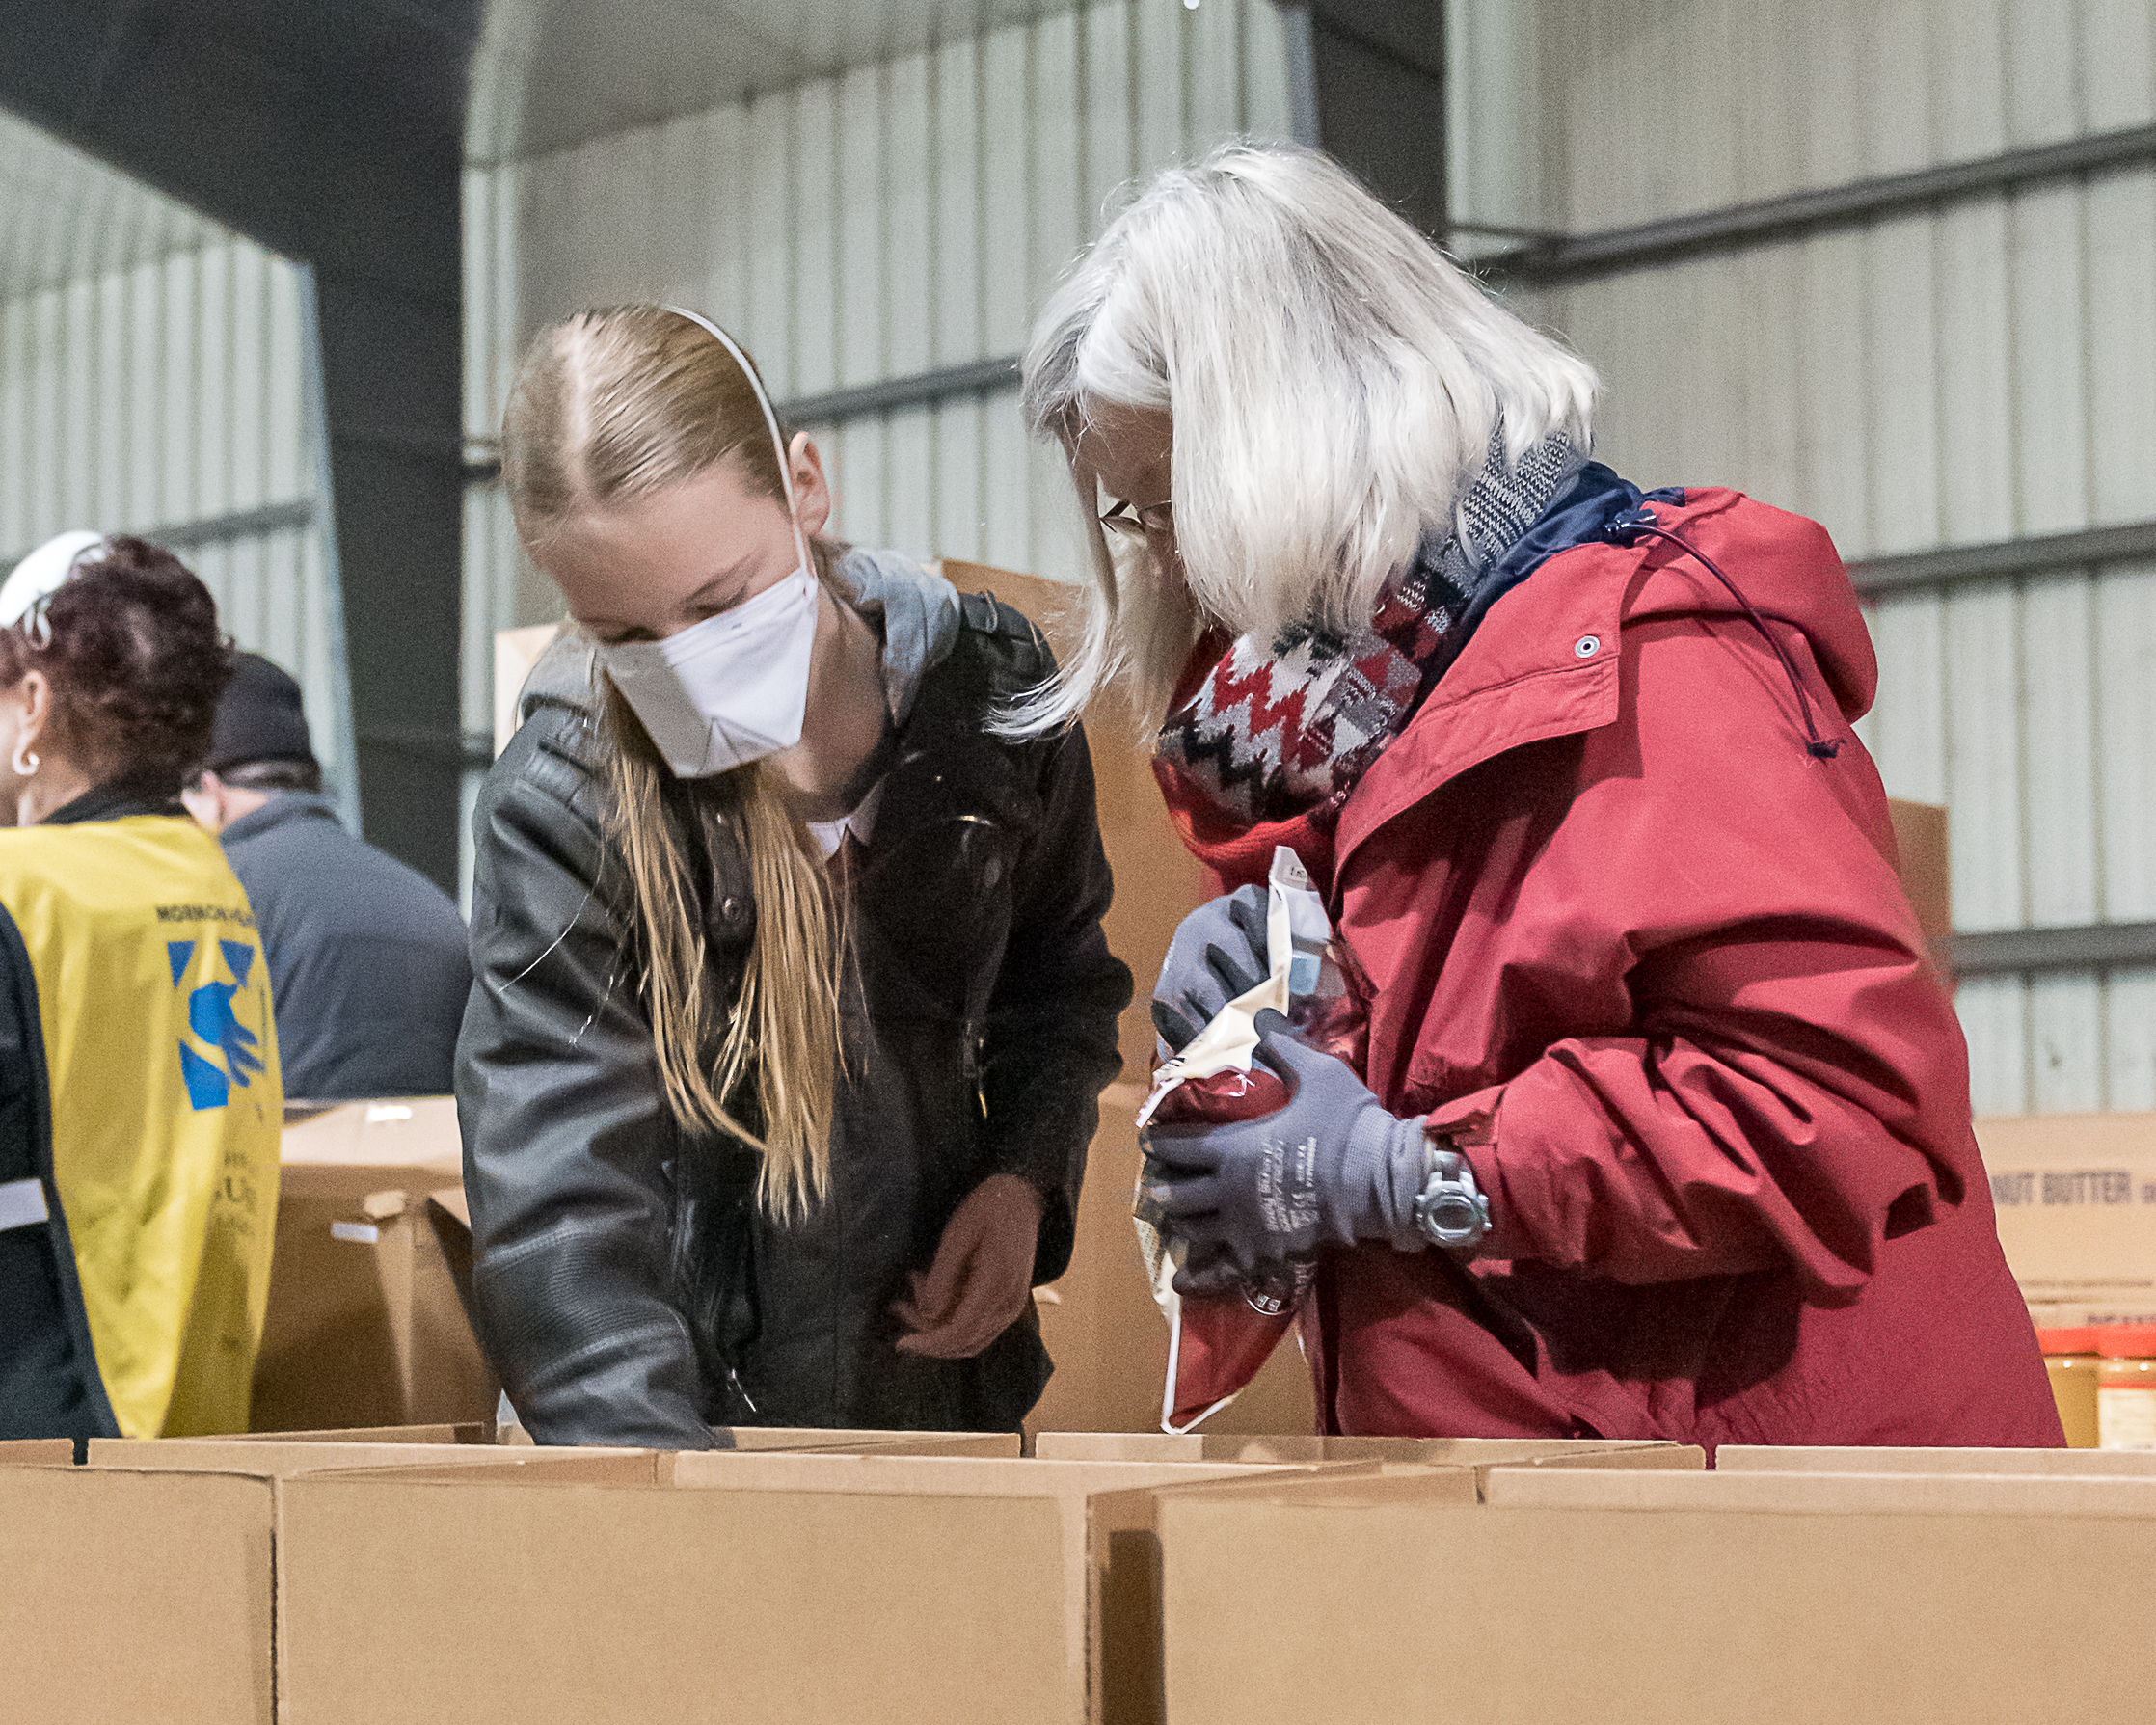 Volunteers load goods and supplies in Oroville, California, on Nov. 17, 2018, to give to those impacted by California's deadliest wildfire, which heavily damaged Paradise, California.